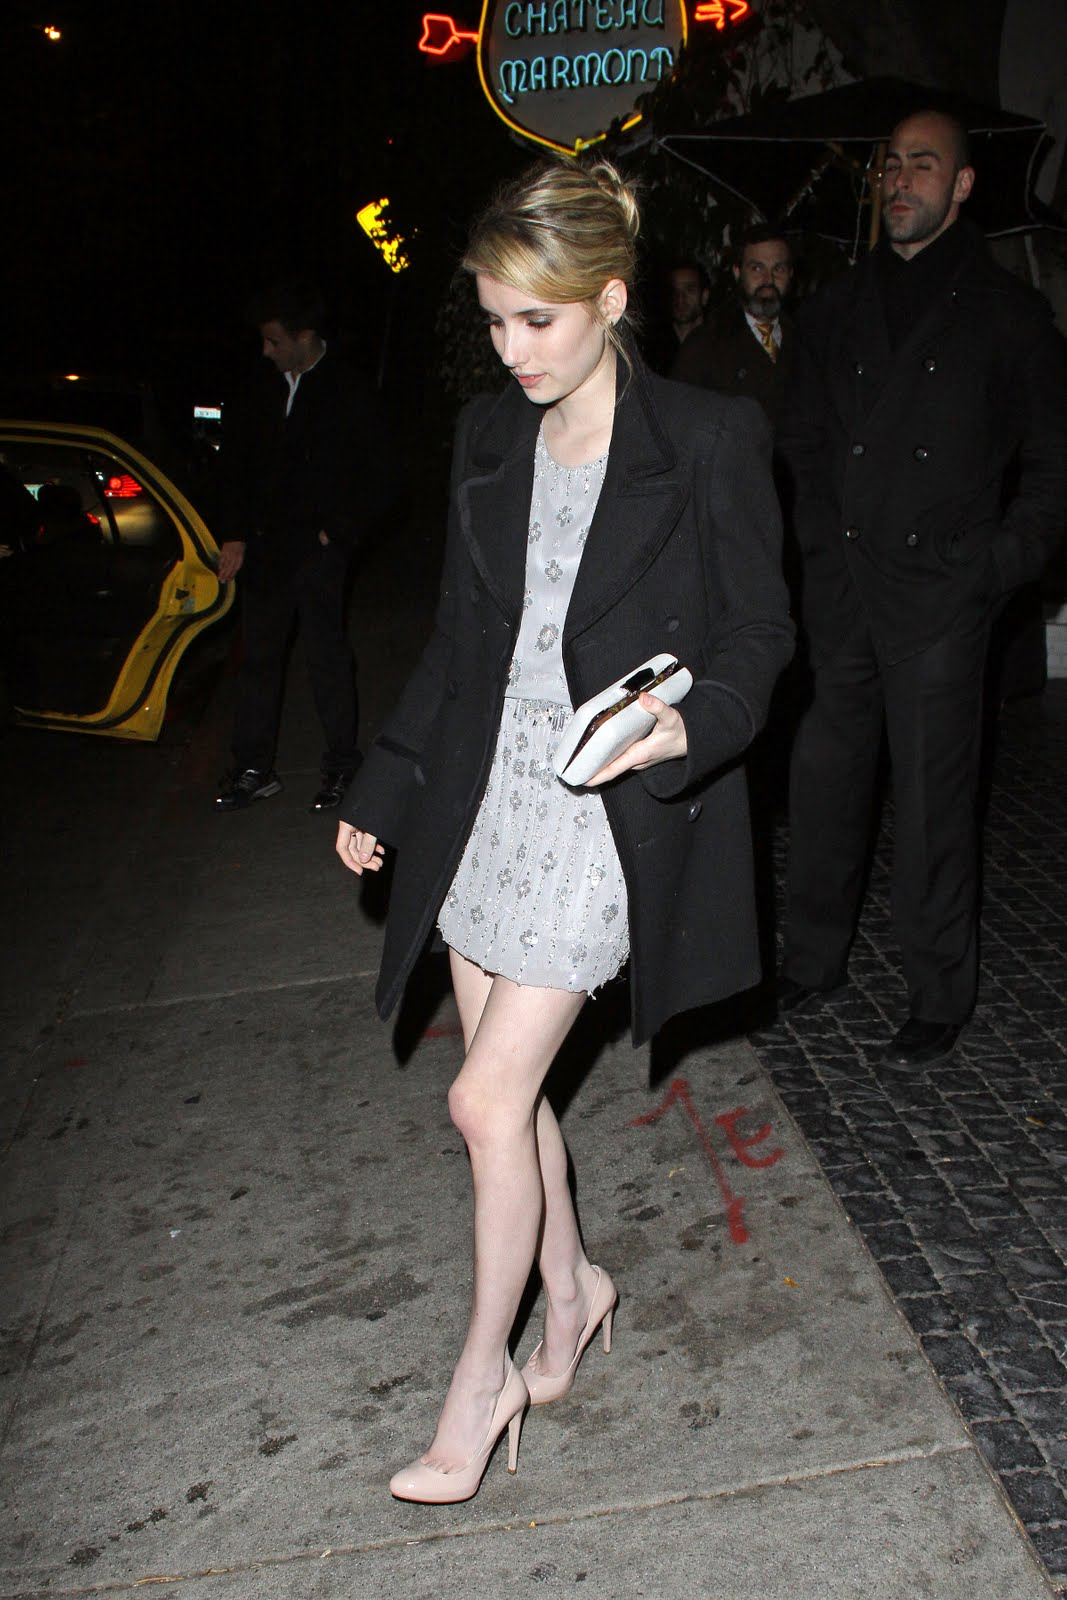 the toe cleavage blog barely legal emma roberts